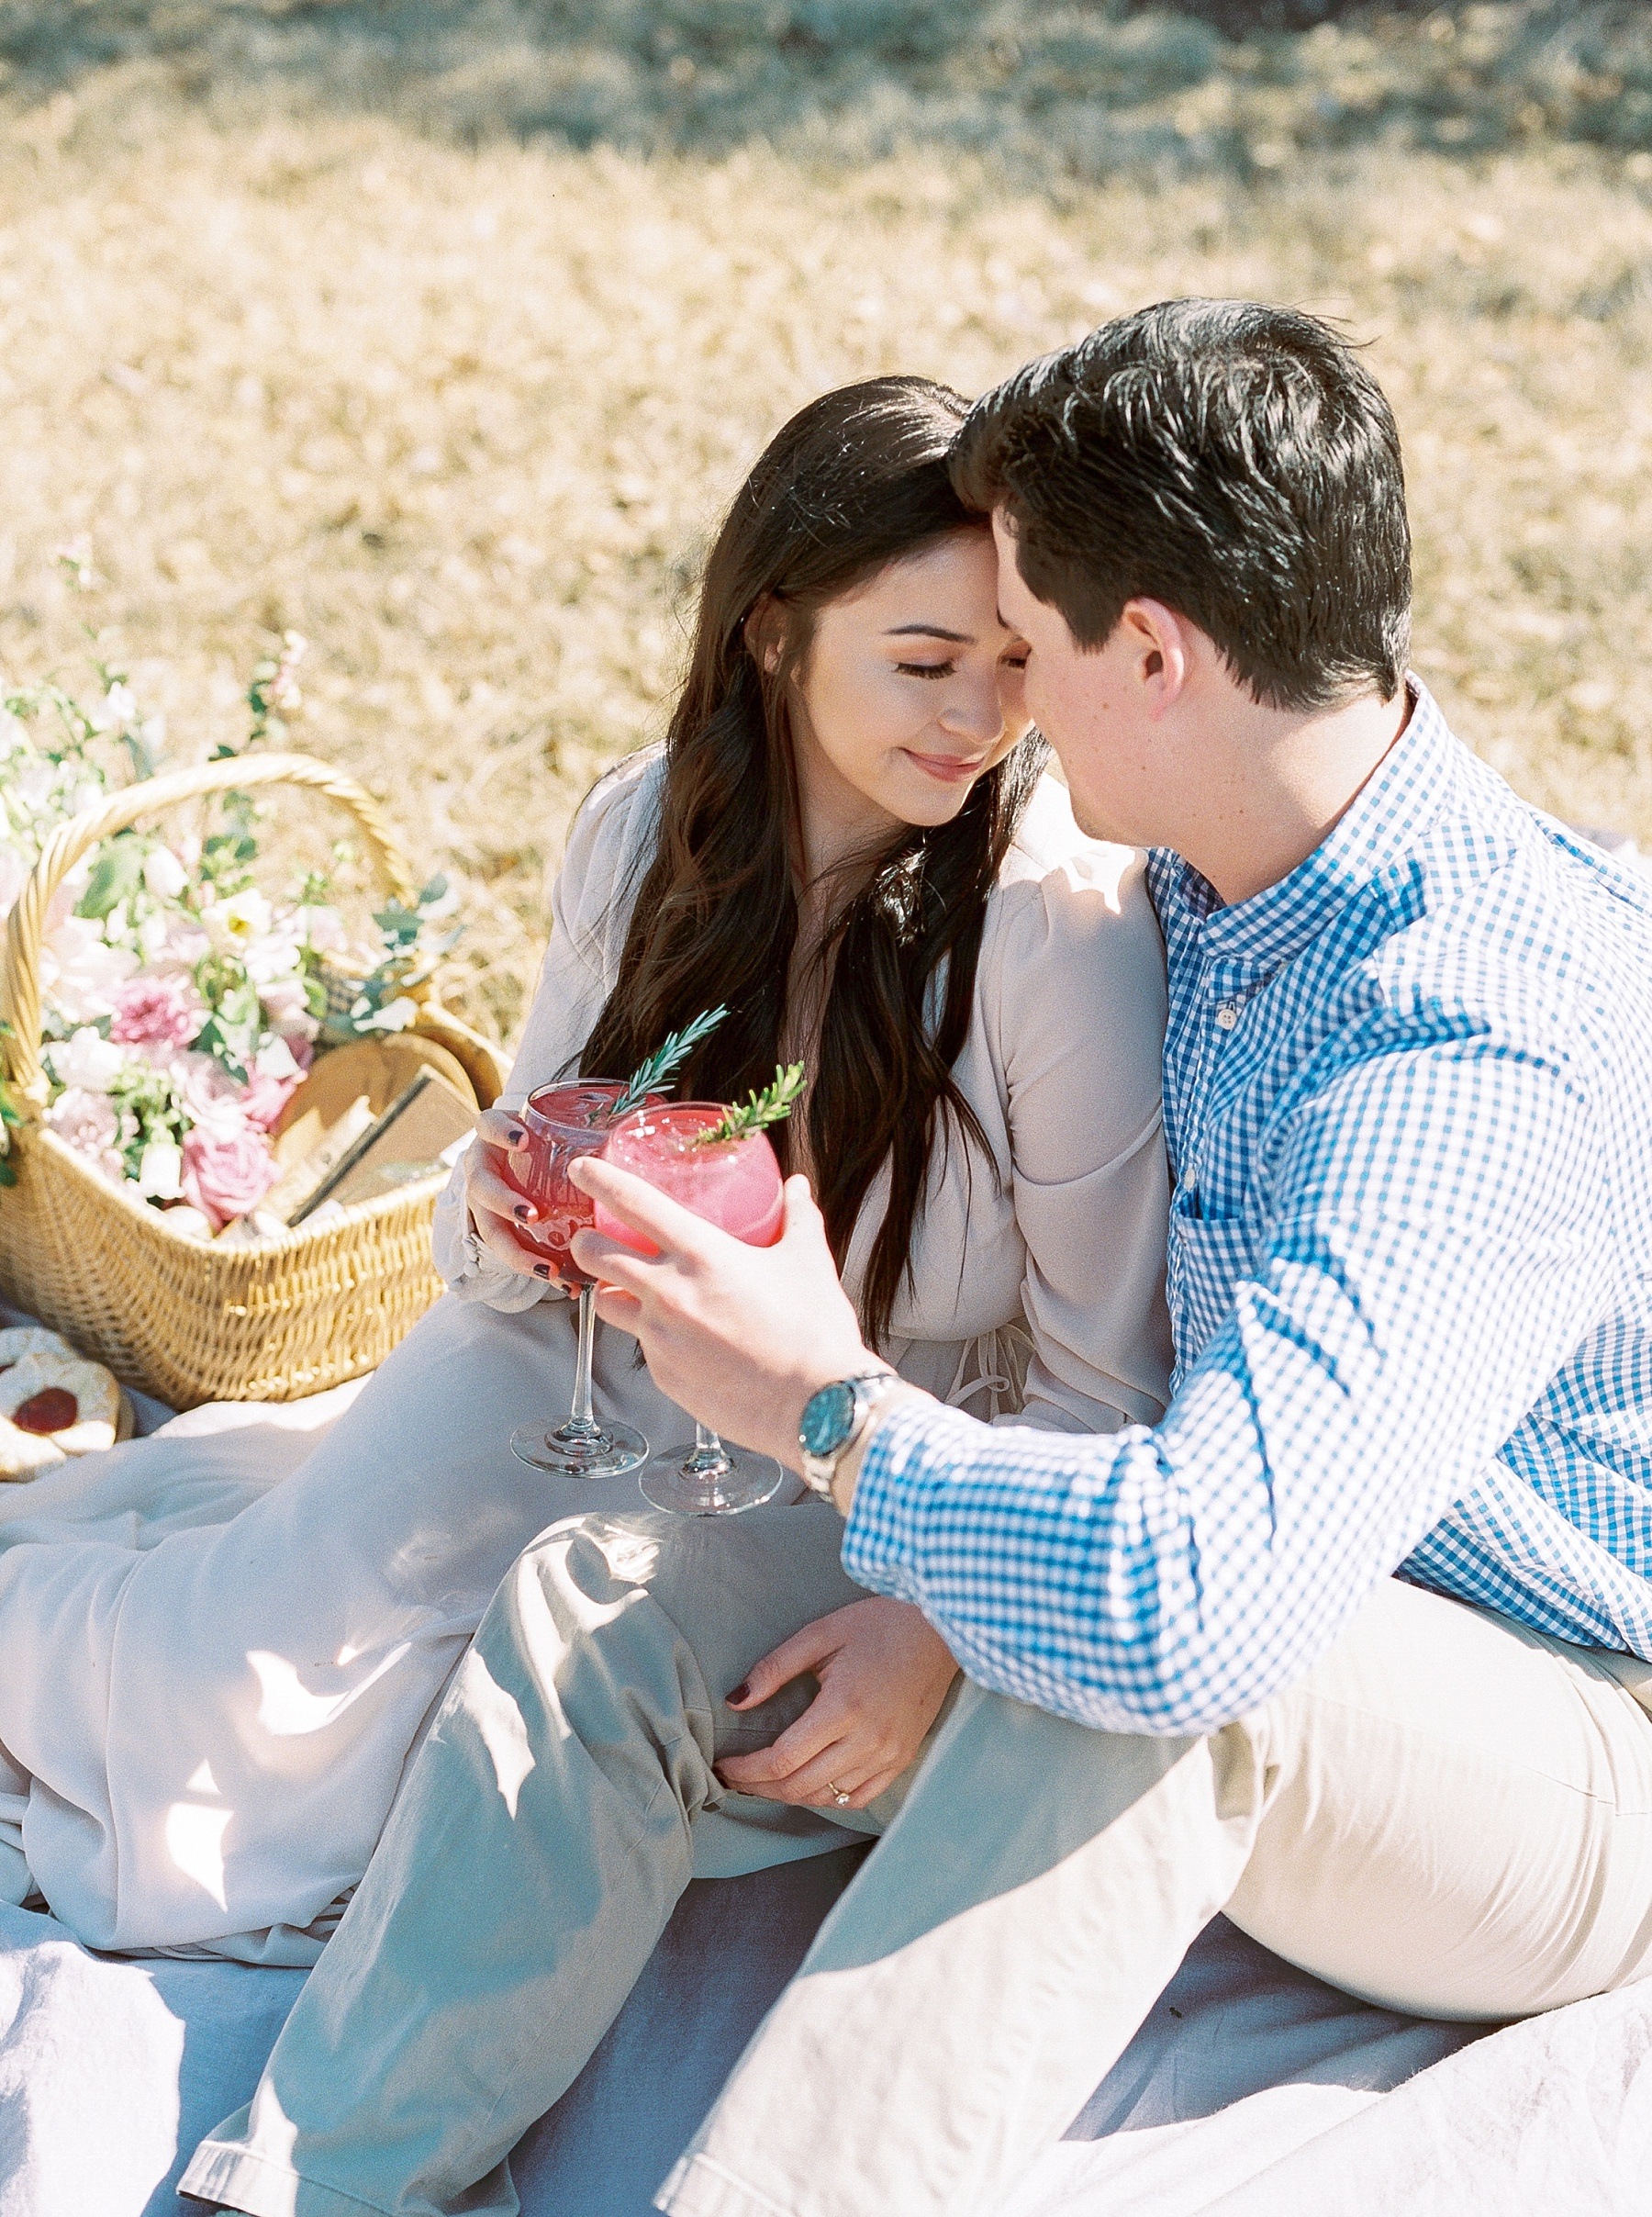 Late Fall Farm-to-table Inspired Brunch Picnic Engagement Session During Wedding Weekend by Kelsi Kliethermes Photography Best Missouri and Maui Wedding Photographer_0023.jpg